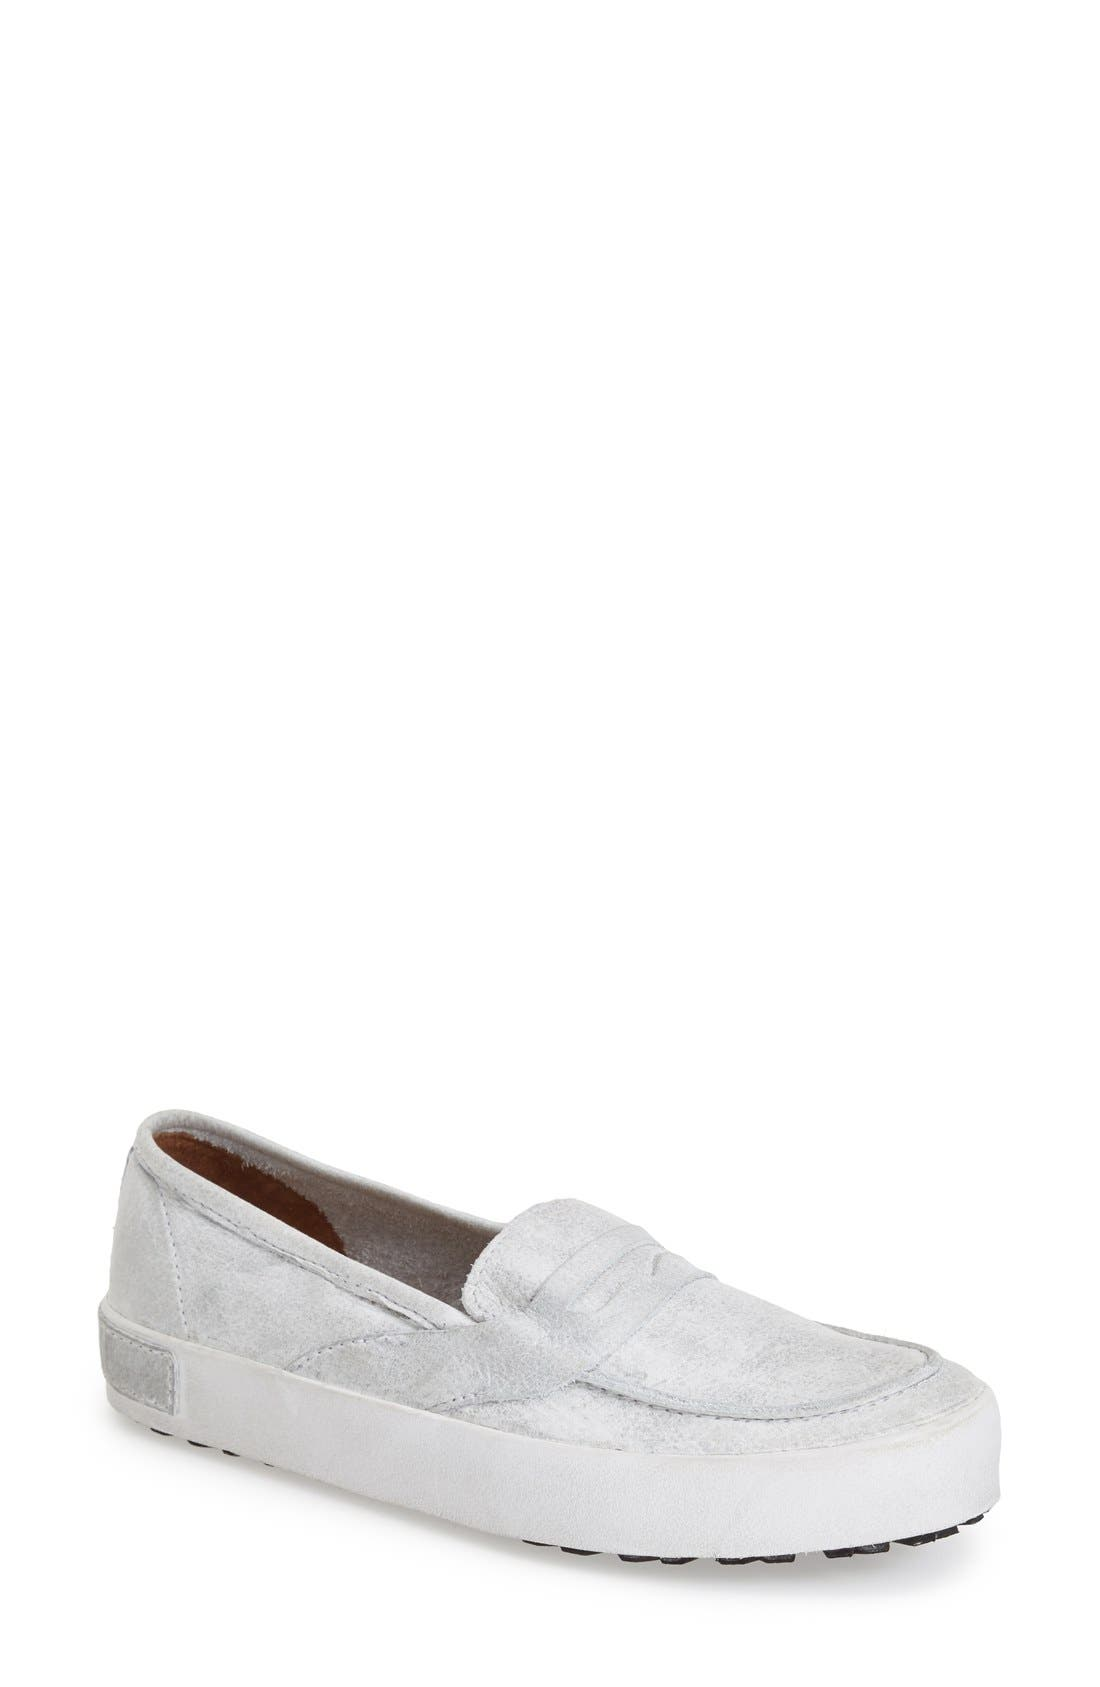 'JL23' Slip-On Sneaker,                         Main,                         color, White Metallic